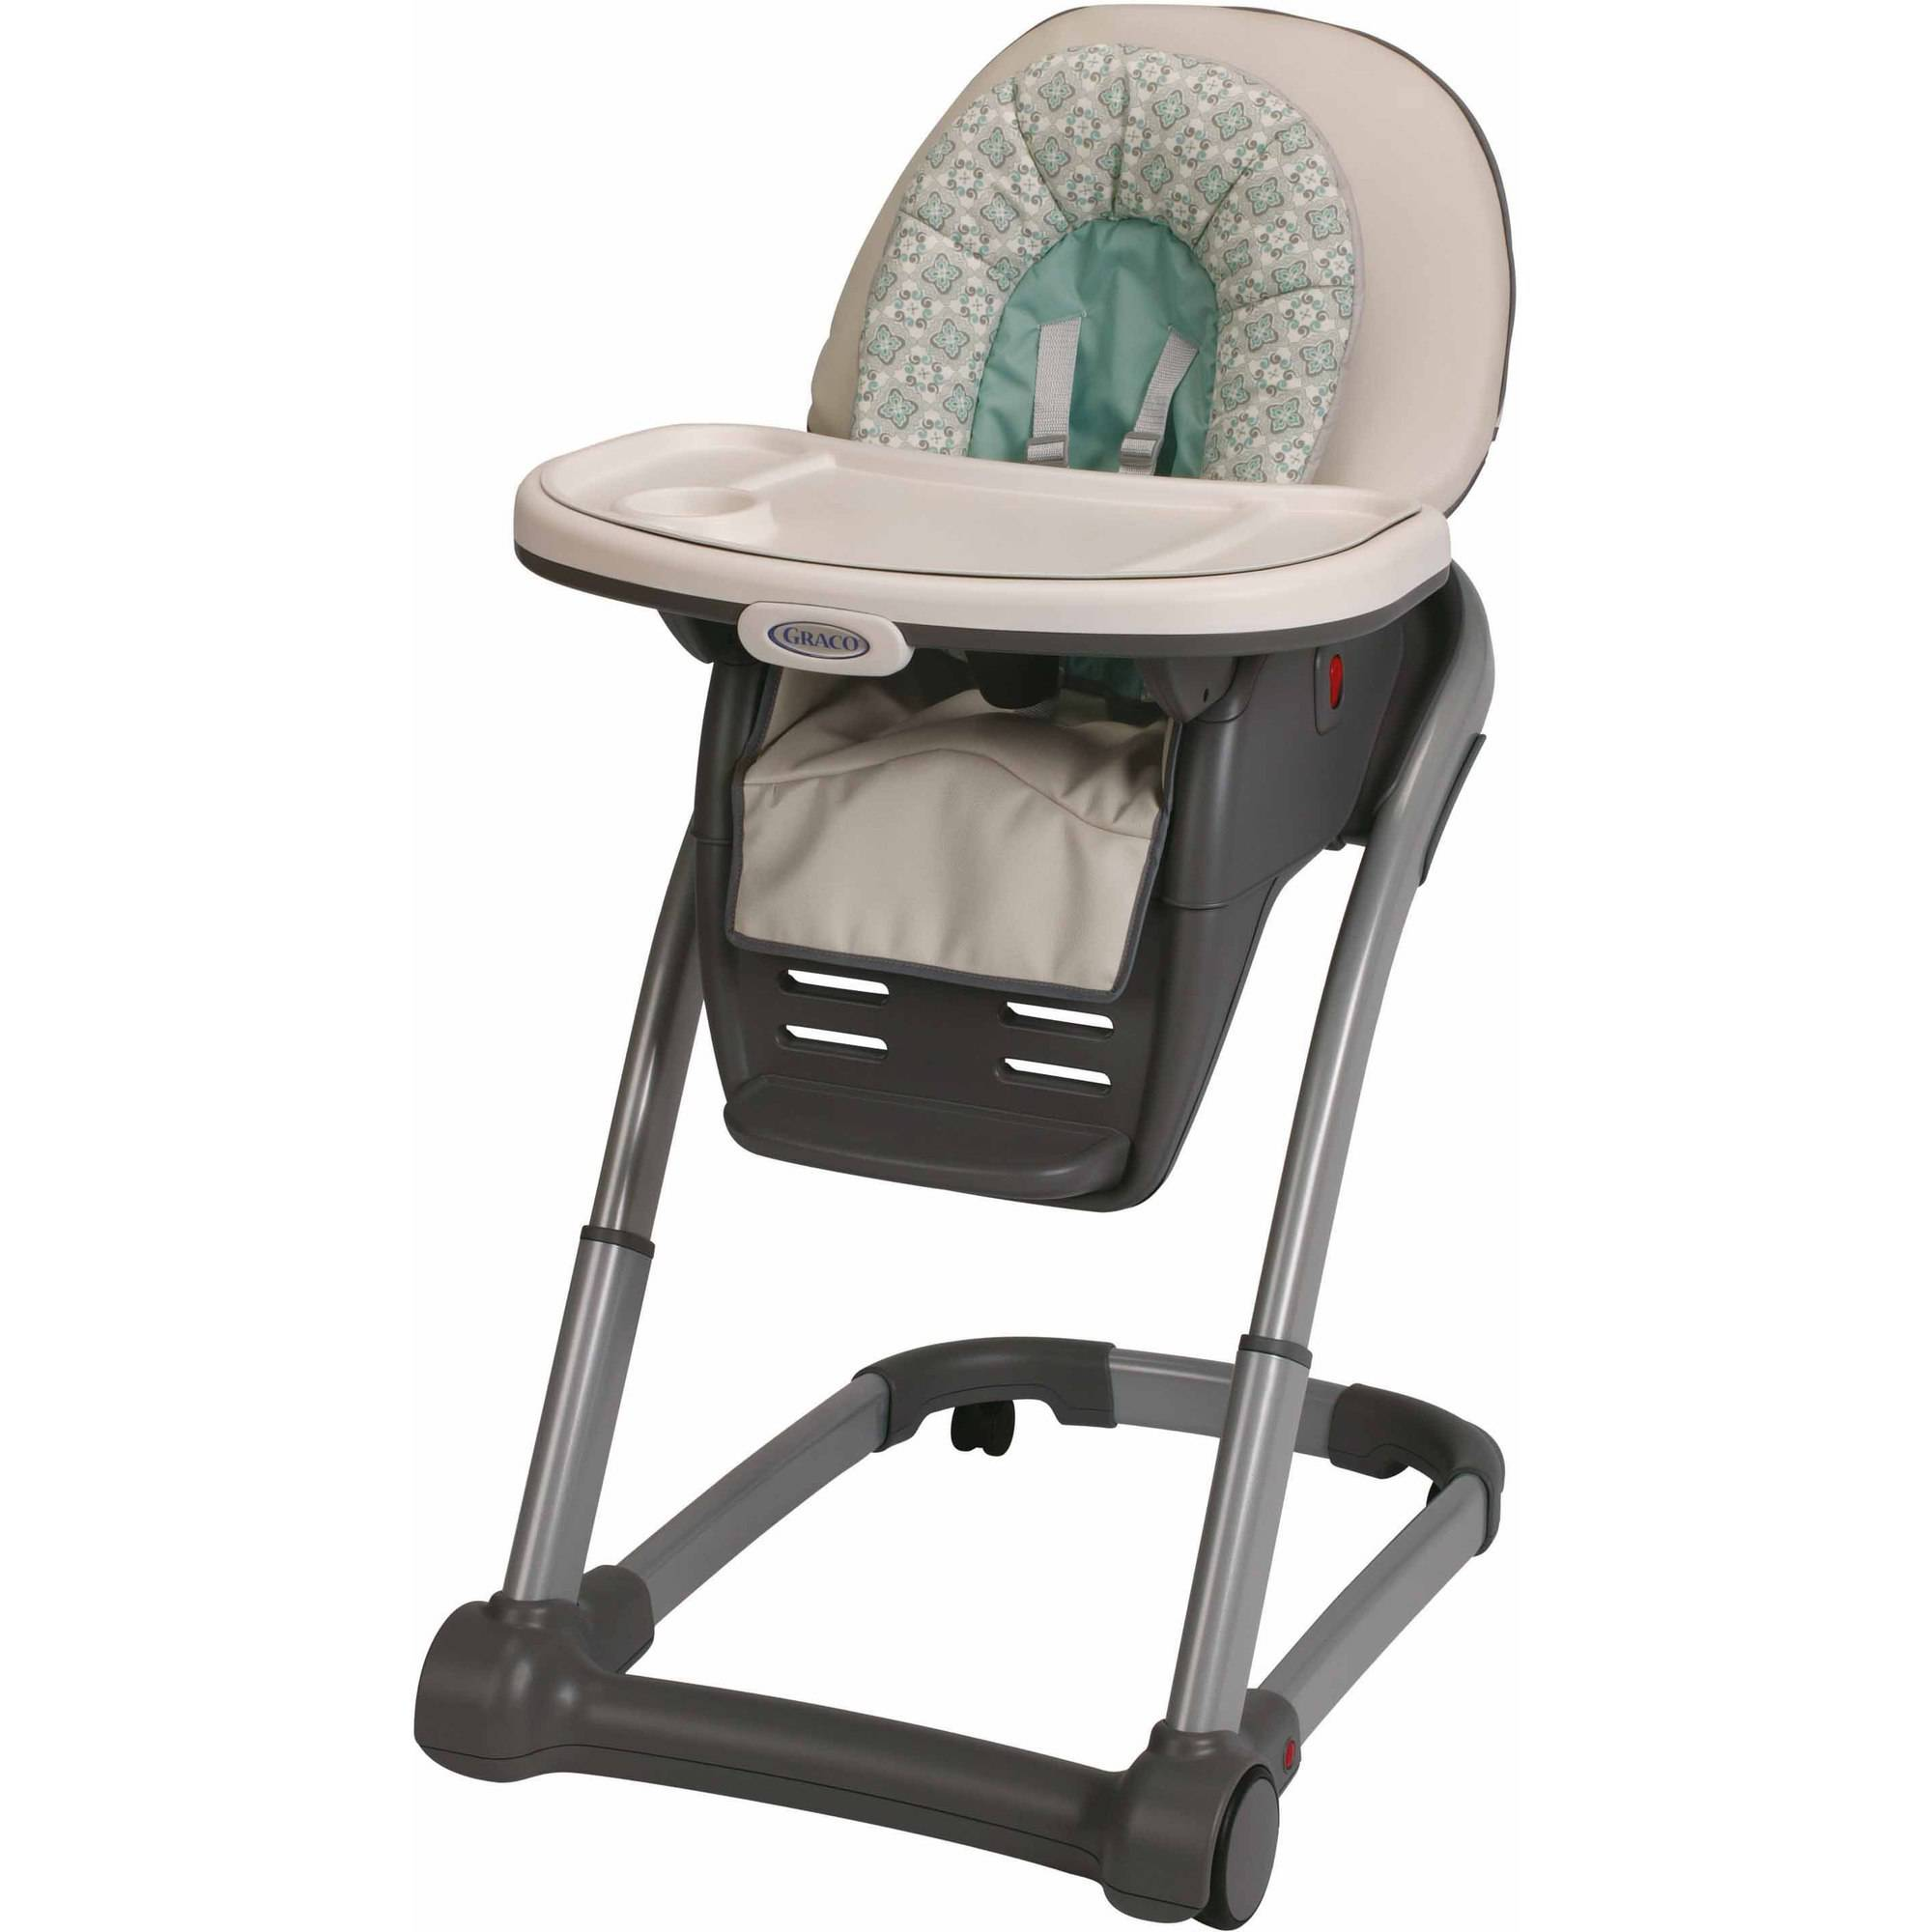 graco blossom in seating system convertible high chair  - graco blossom in seating system convertible high chair winslet